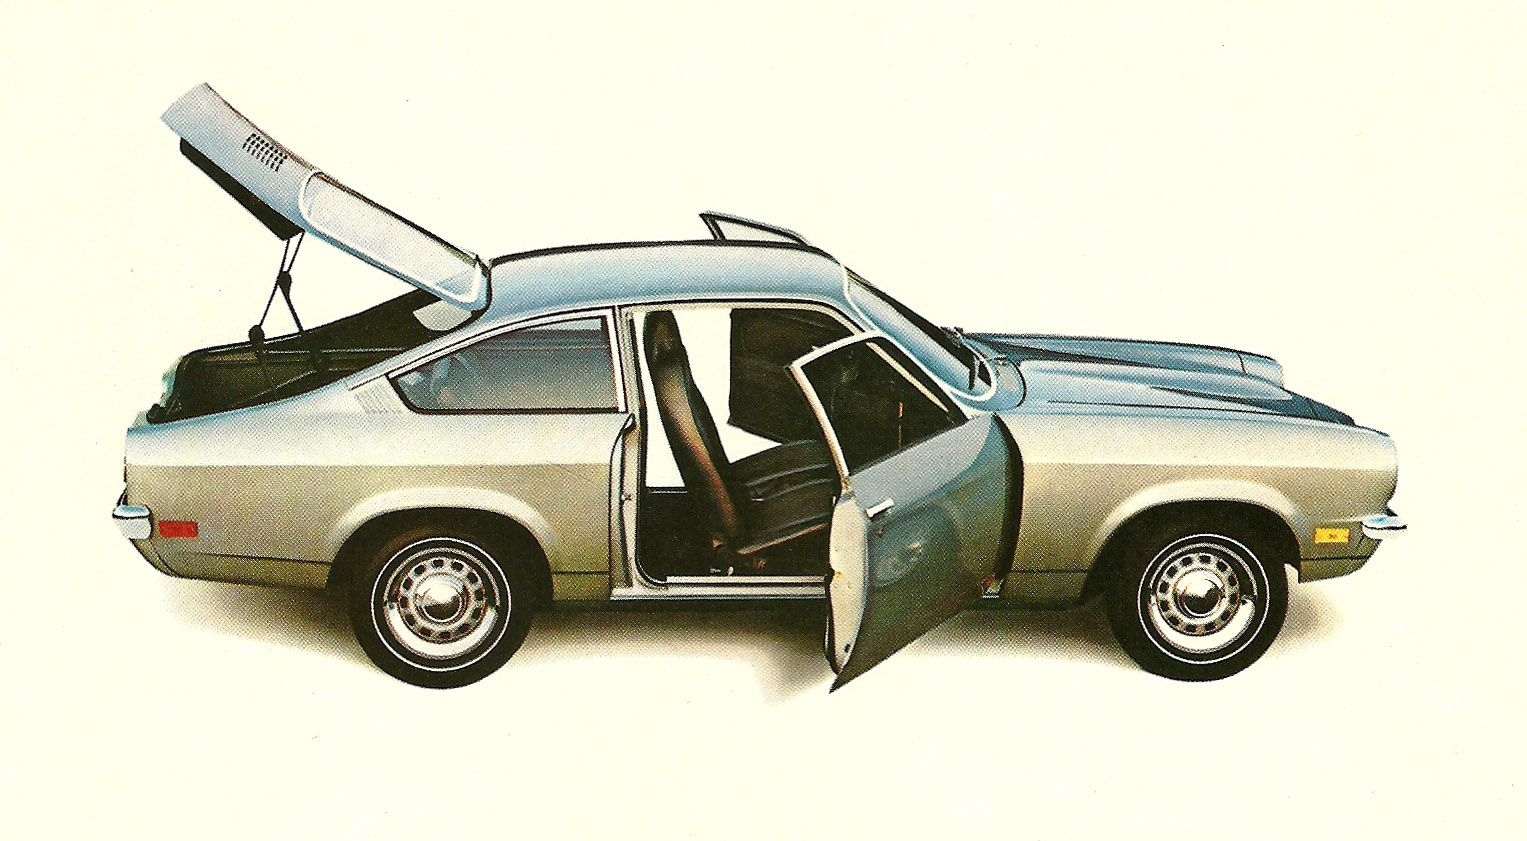 All Chevy 73 chevy vega : 1970 Chevrolet Vega. My first car - needed 5 quarts of oil every ...